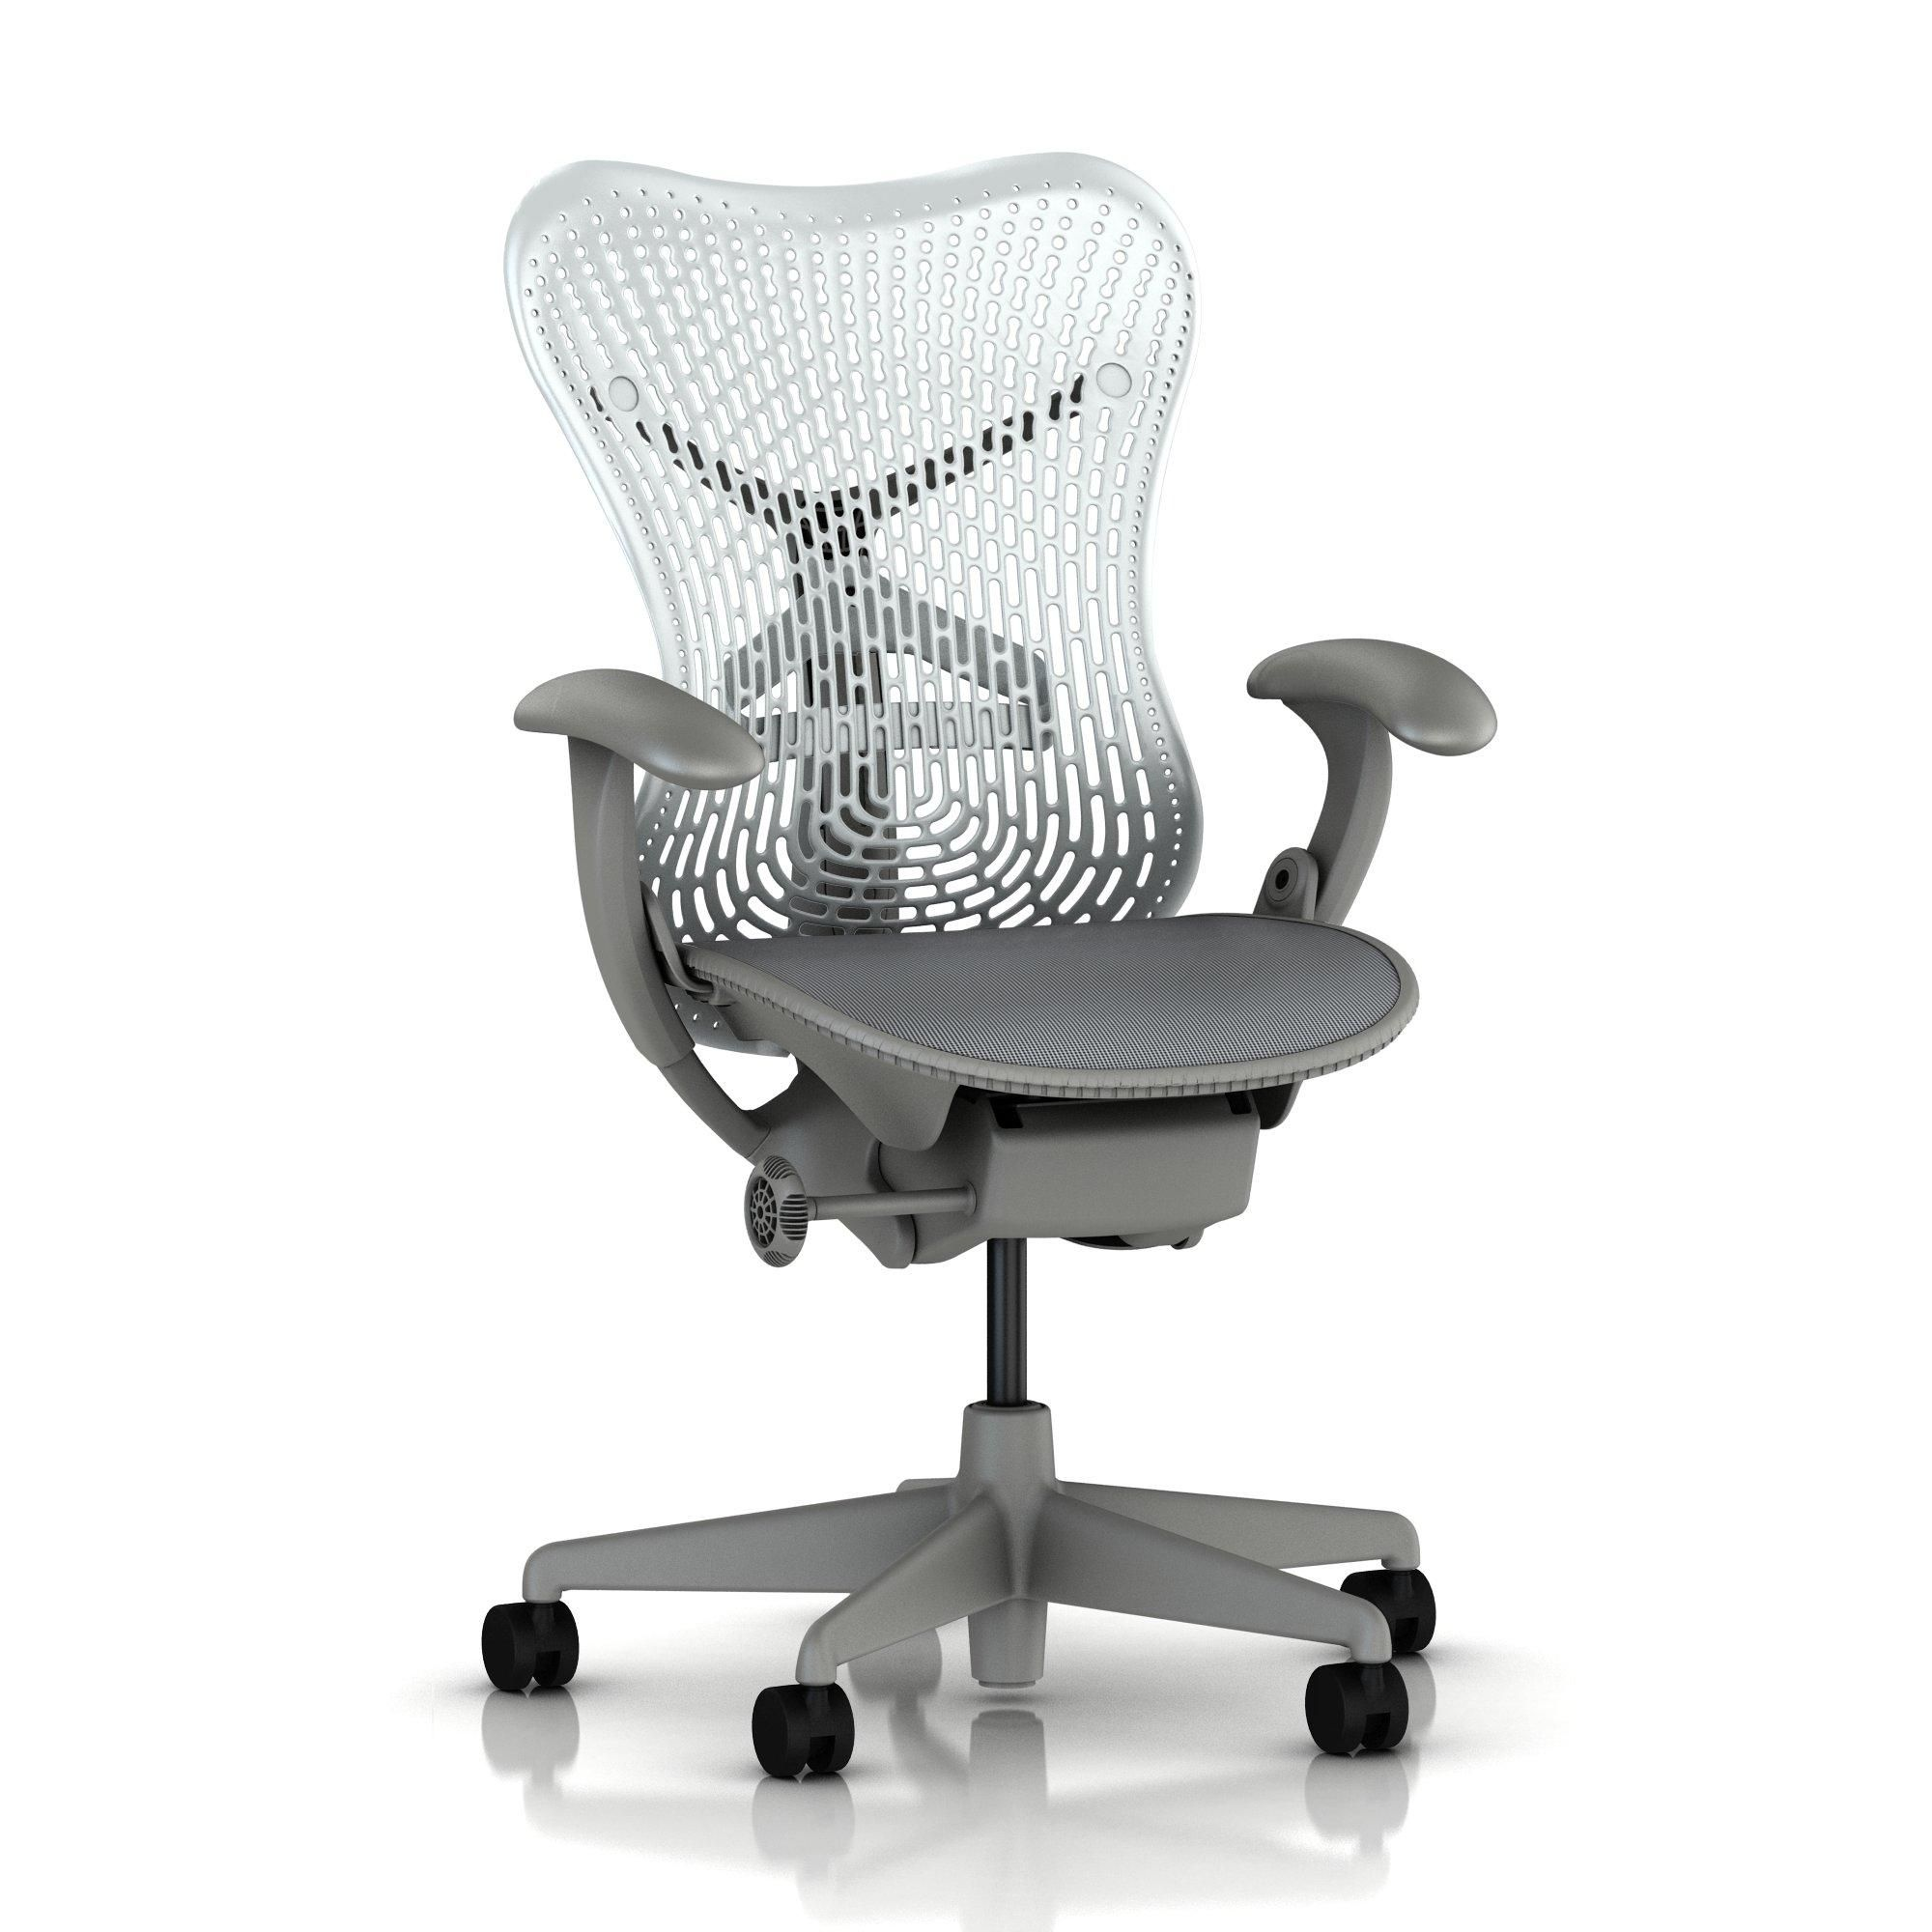 My New Herman Miller Mirra Chair! Mirra chair, Best